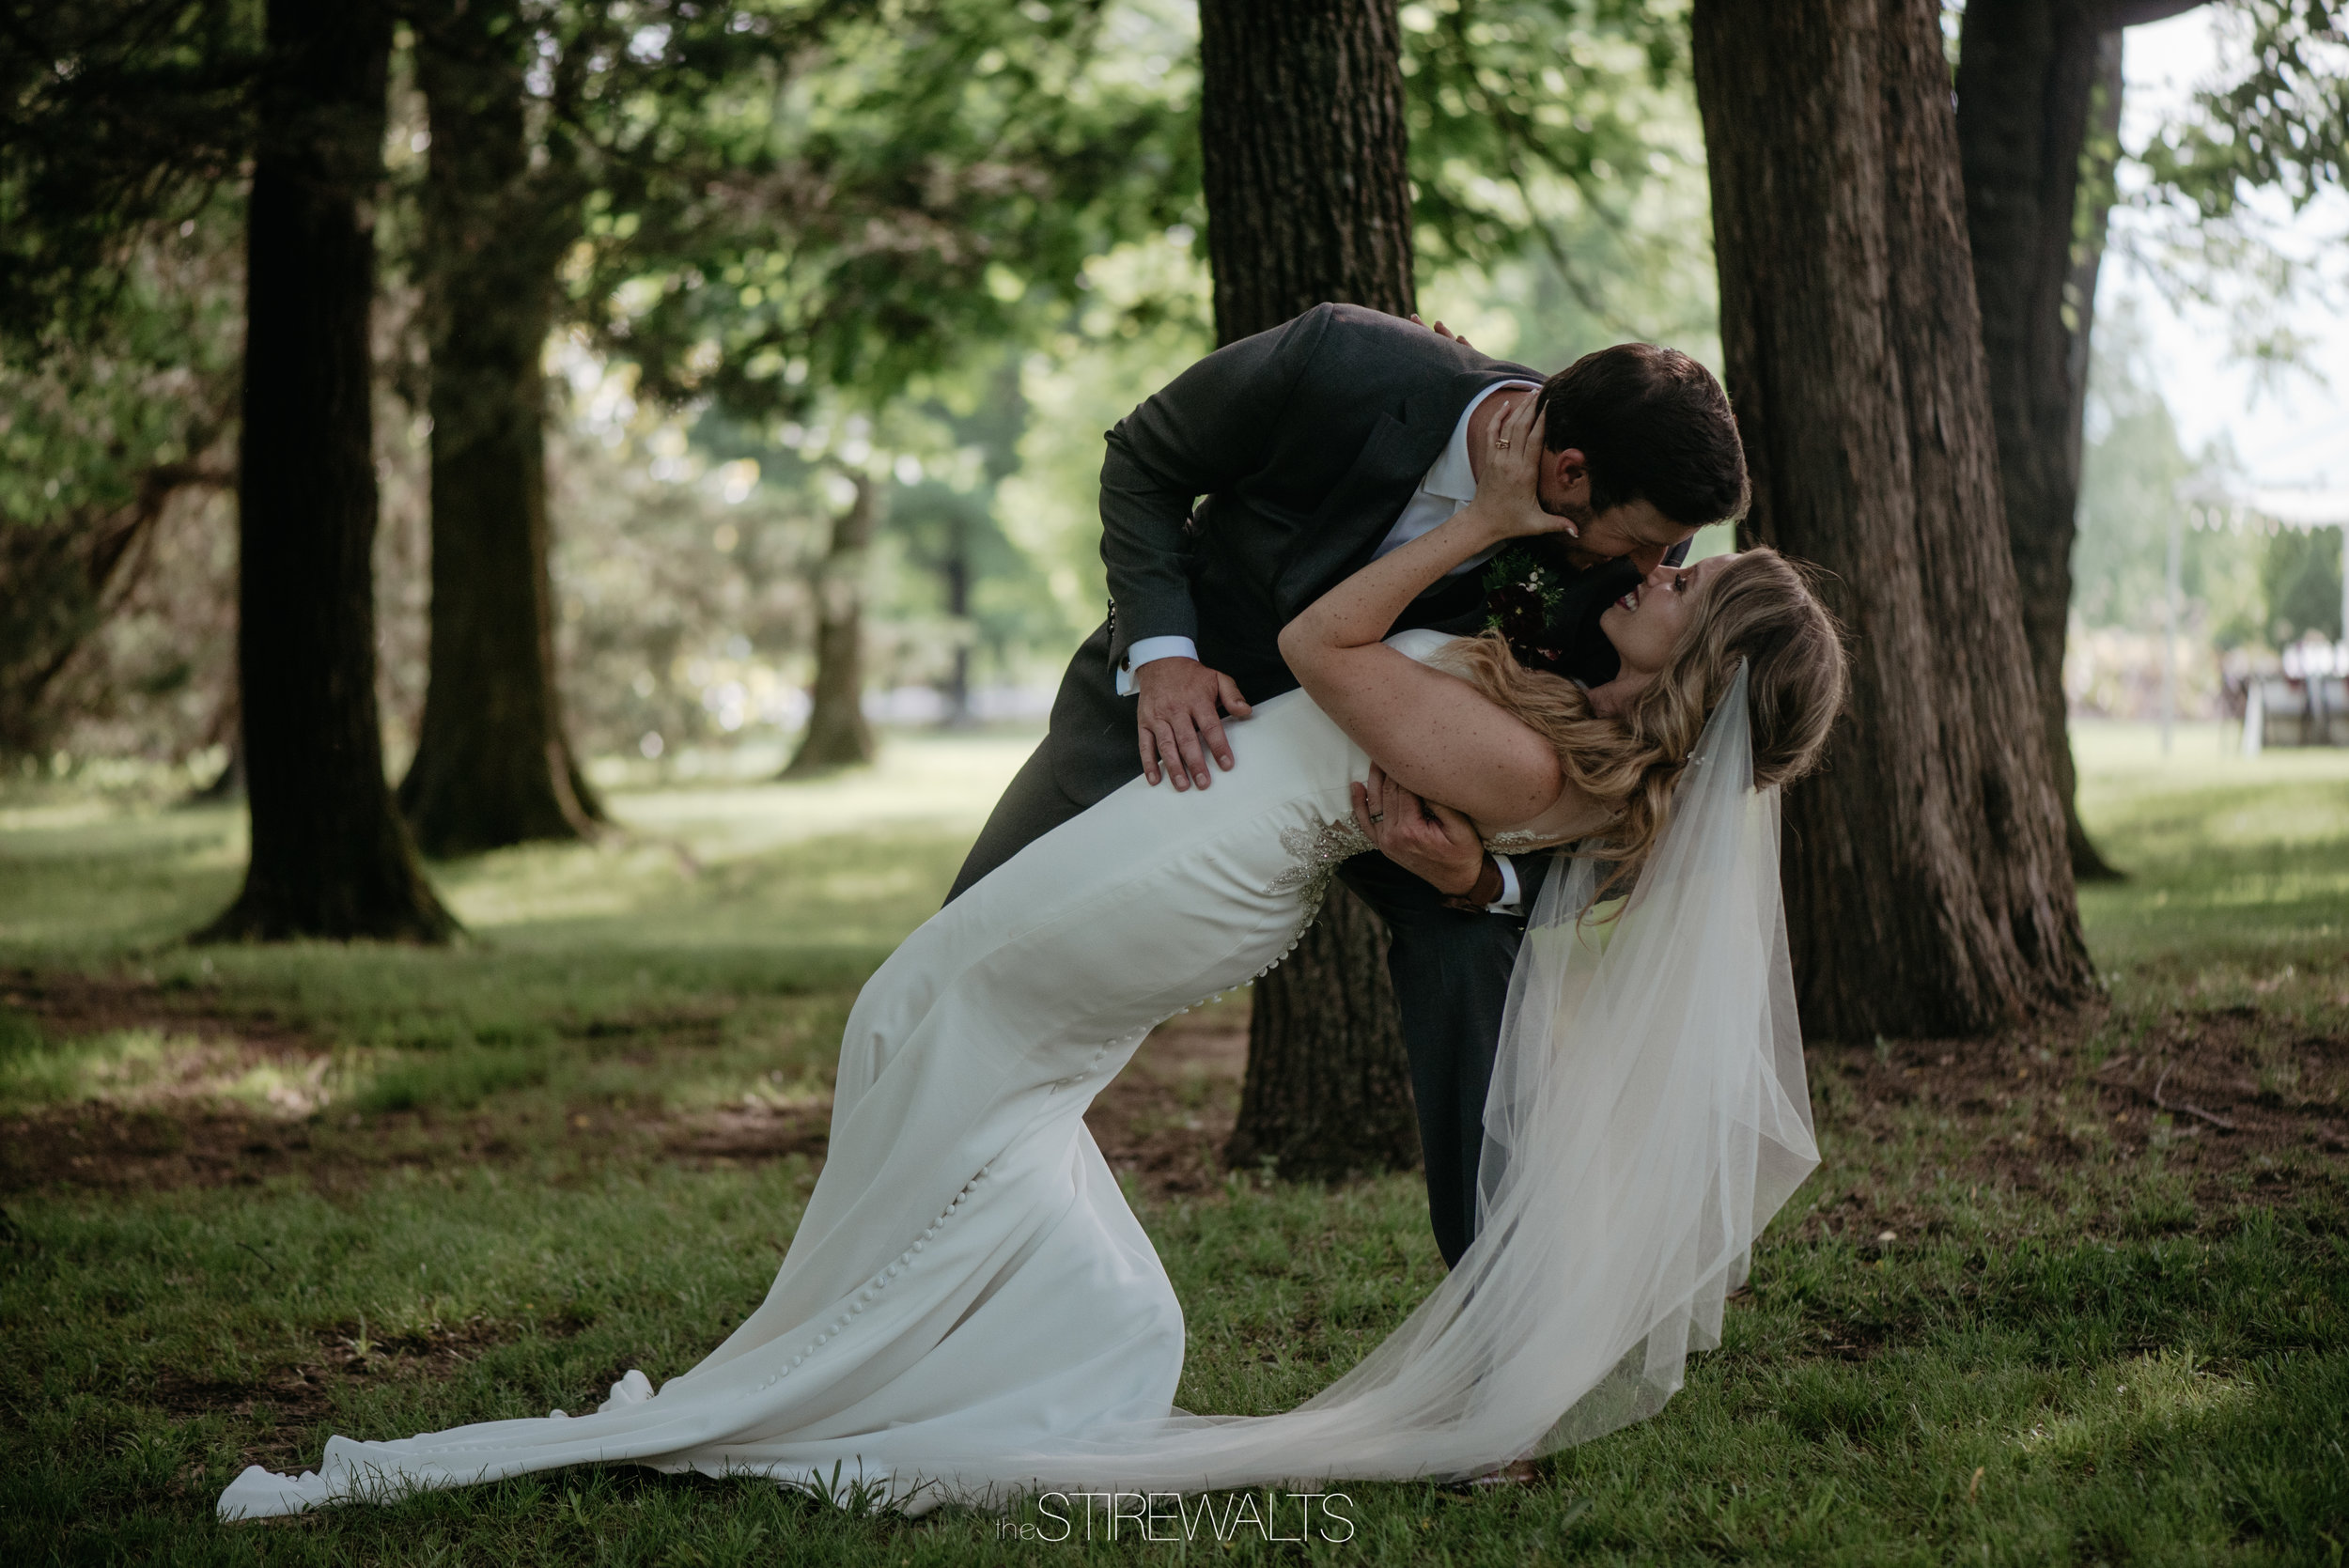 Kayla.Jay.Wedding.Blog.2018.©TheStirewalts-104.jpg